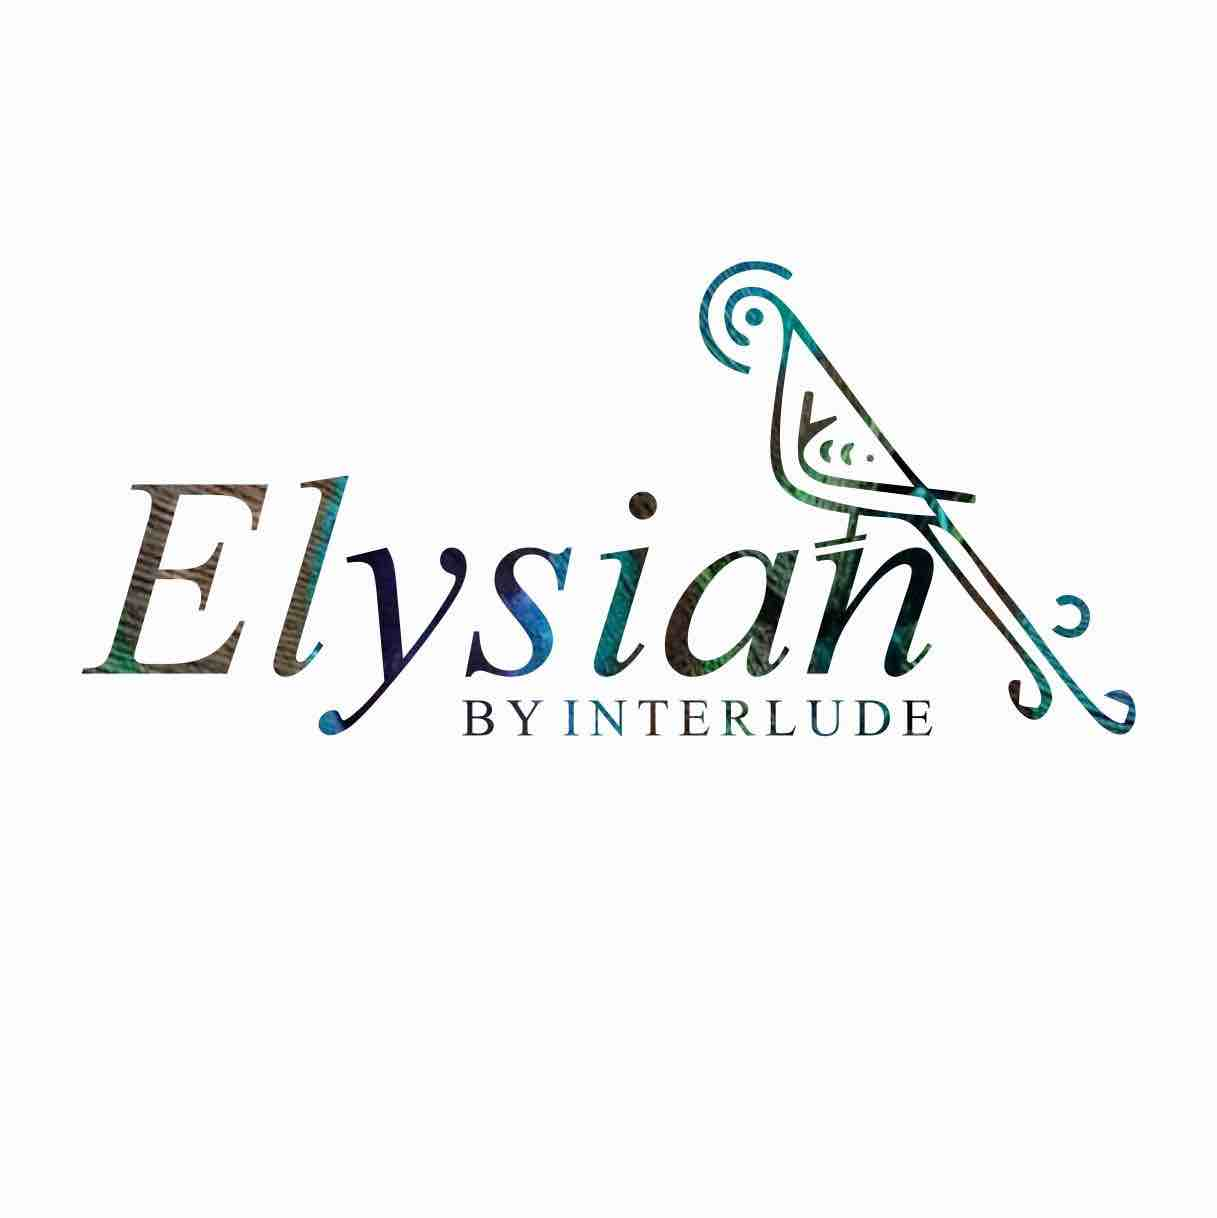 Elysian weddings